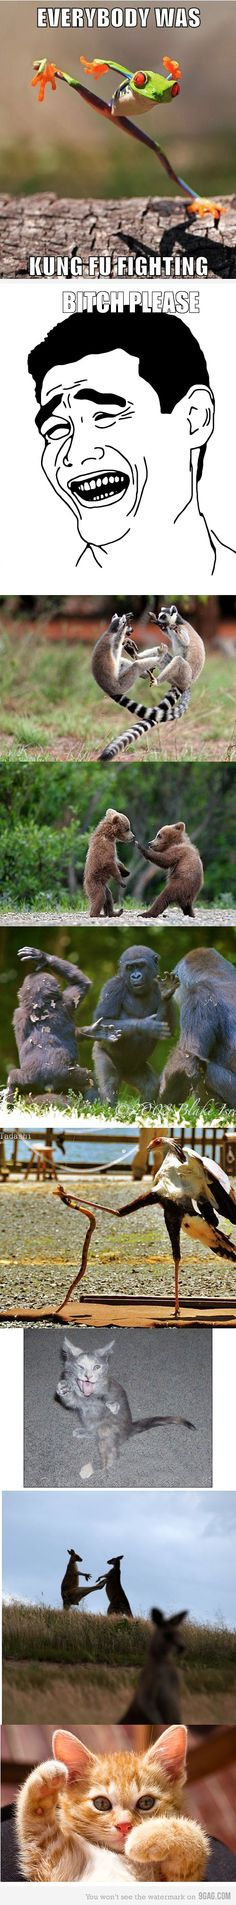 Everybody loves kung fu fighting!